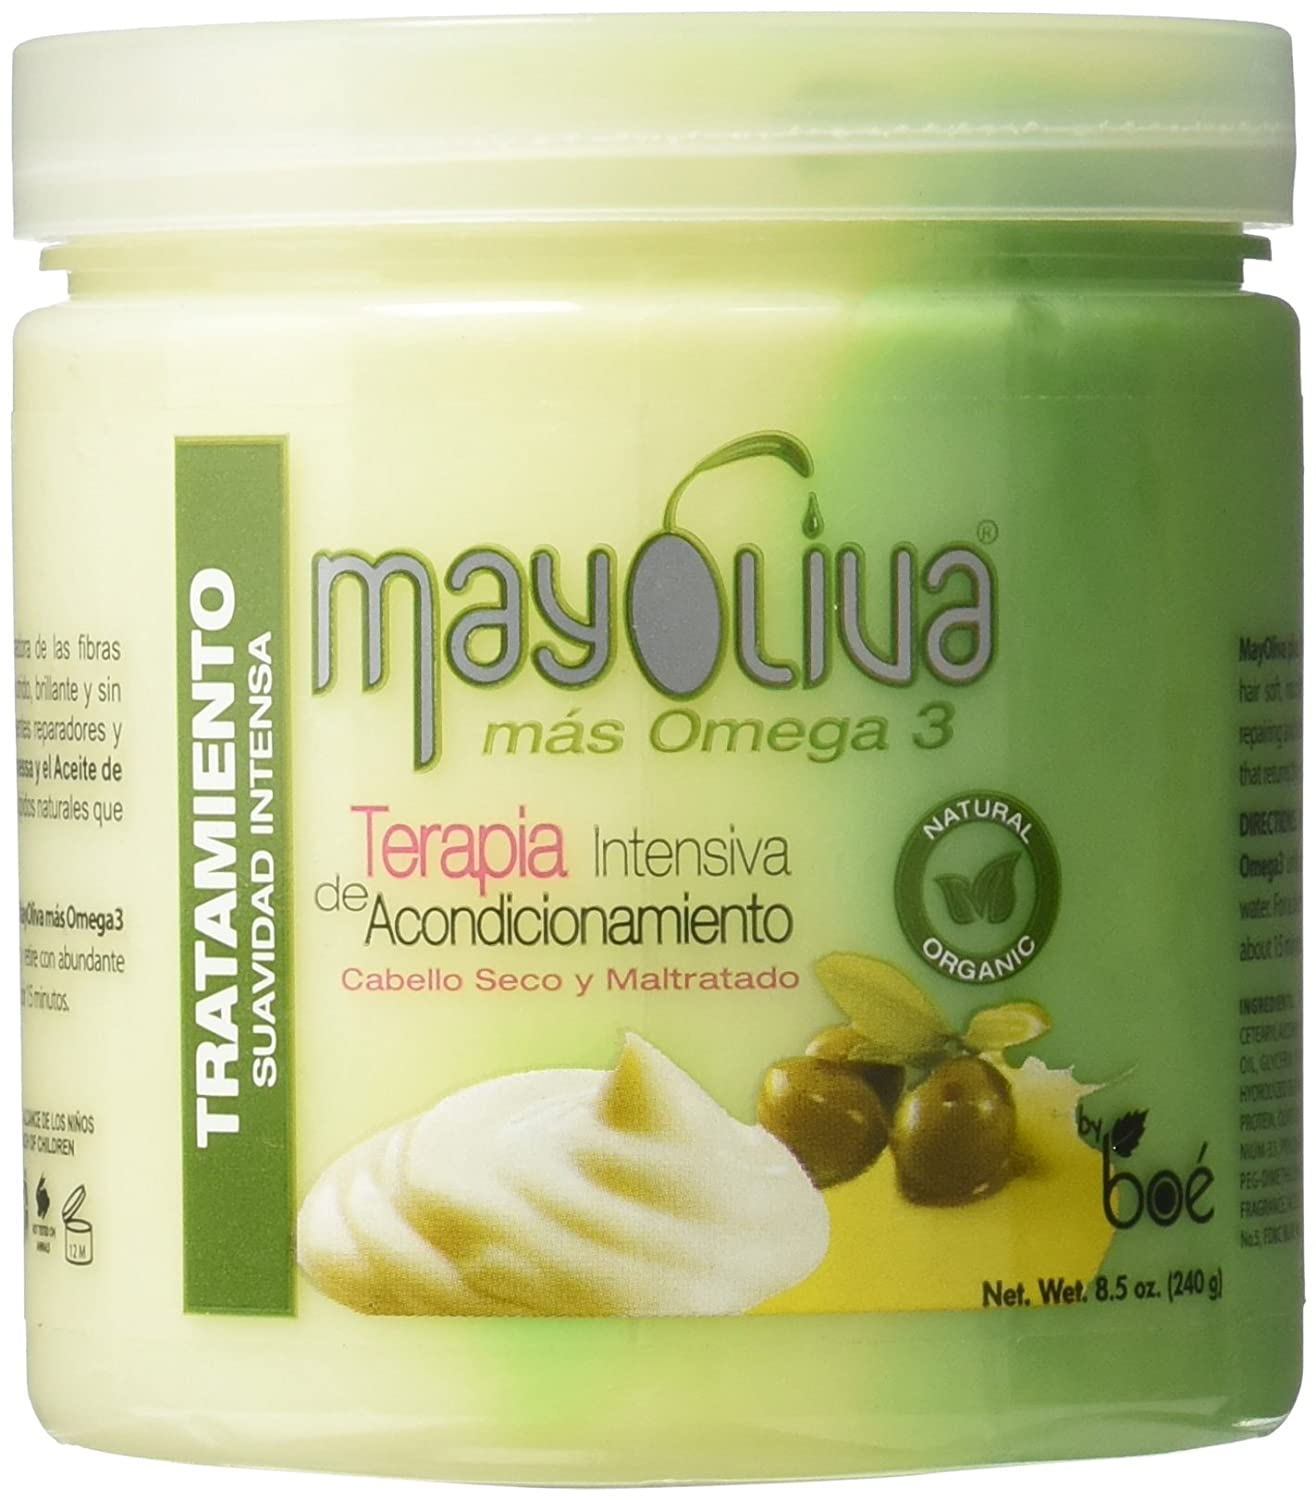 Sale special price Boe Mayoliva Memphis Mall Intensive Conditioning Therapy Damaged Dry for Ha